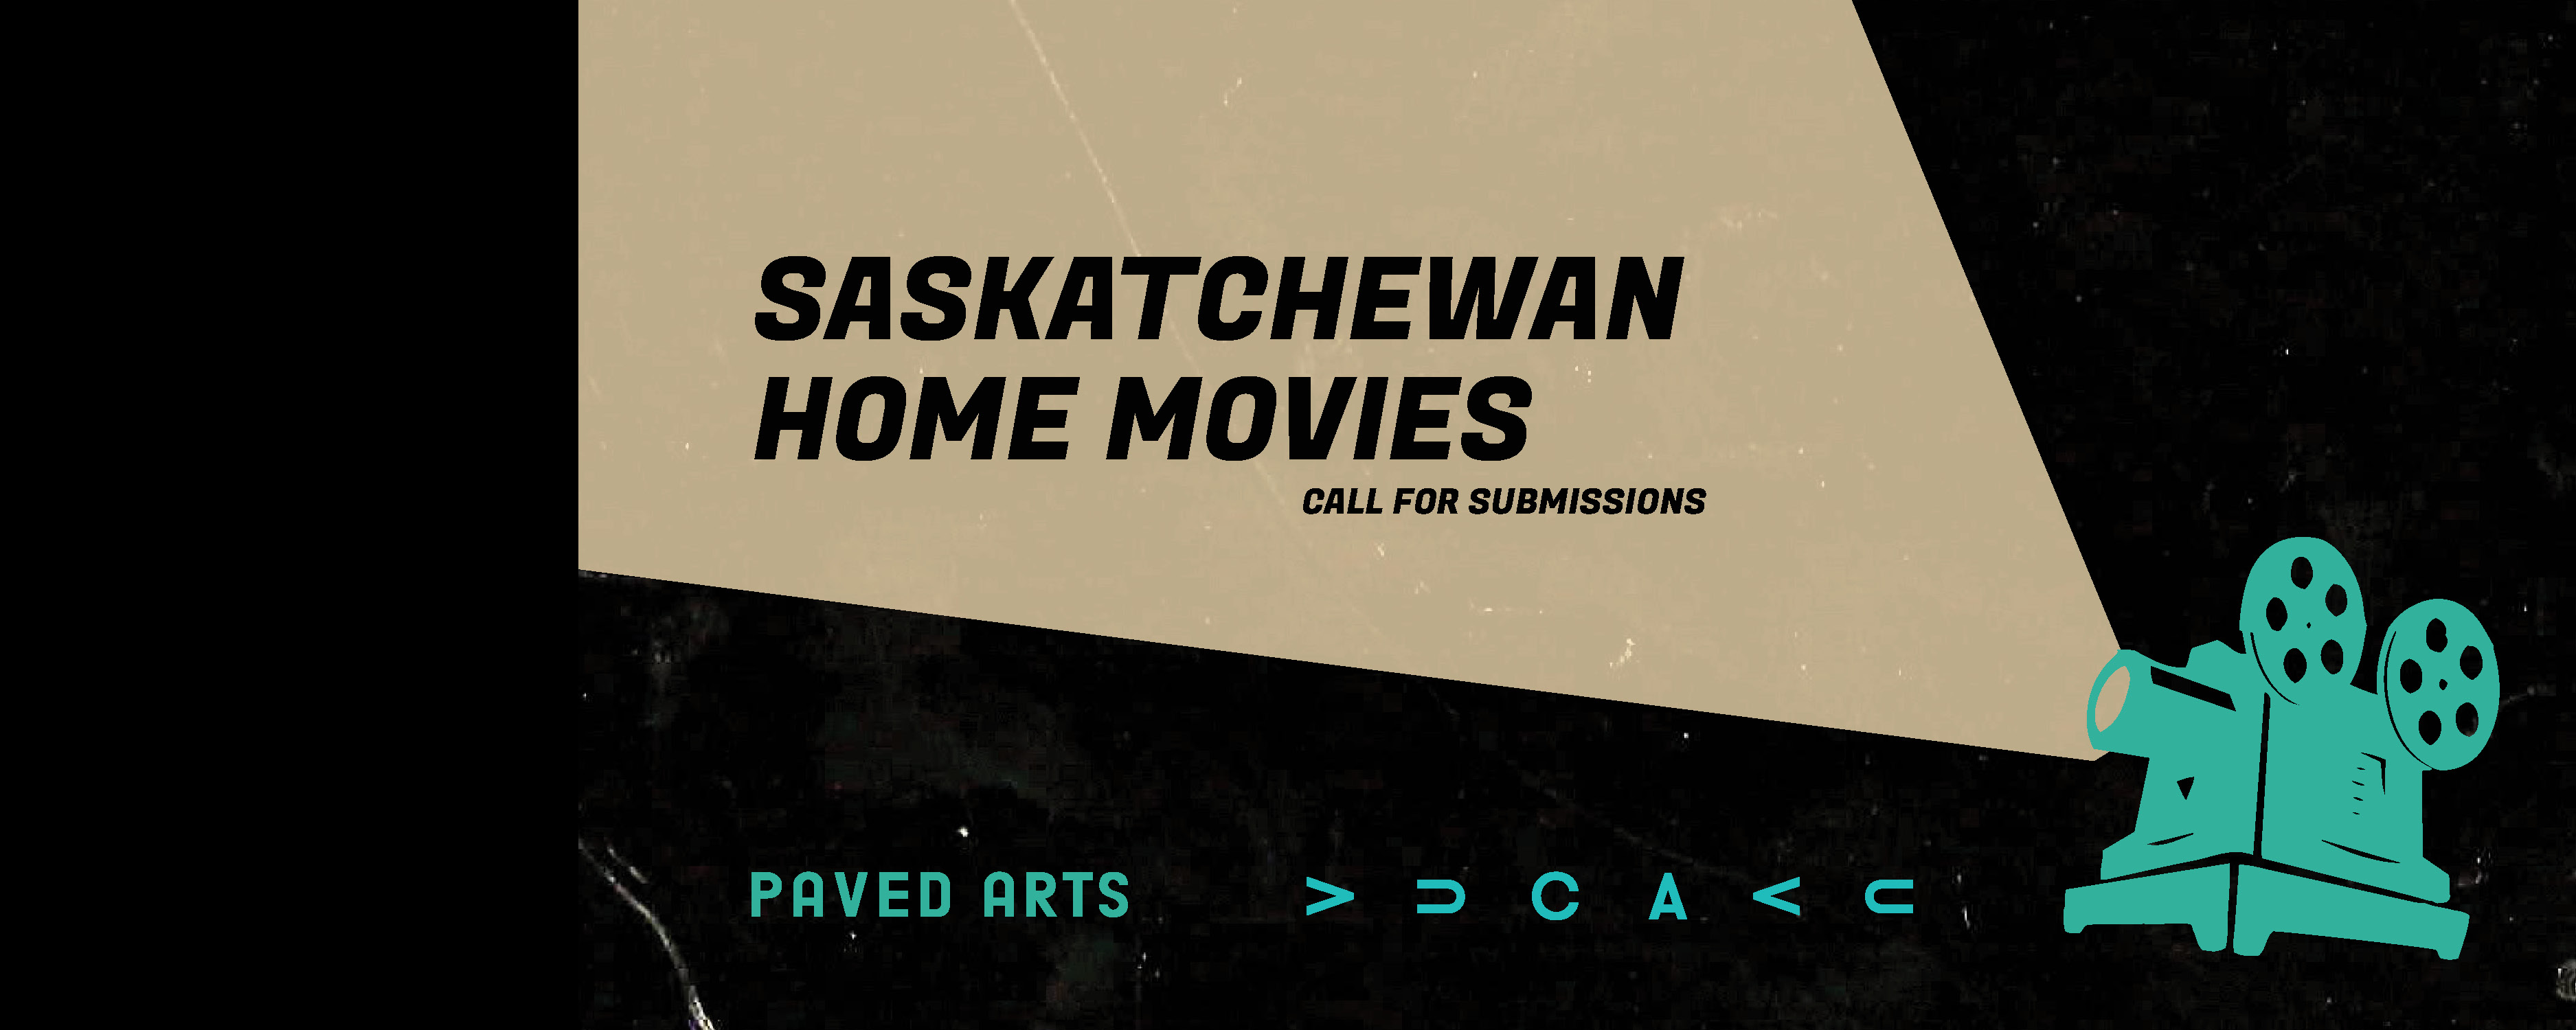 Saskatchewan Home Movies